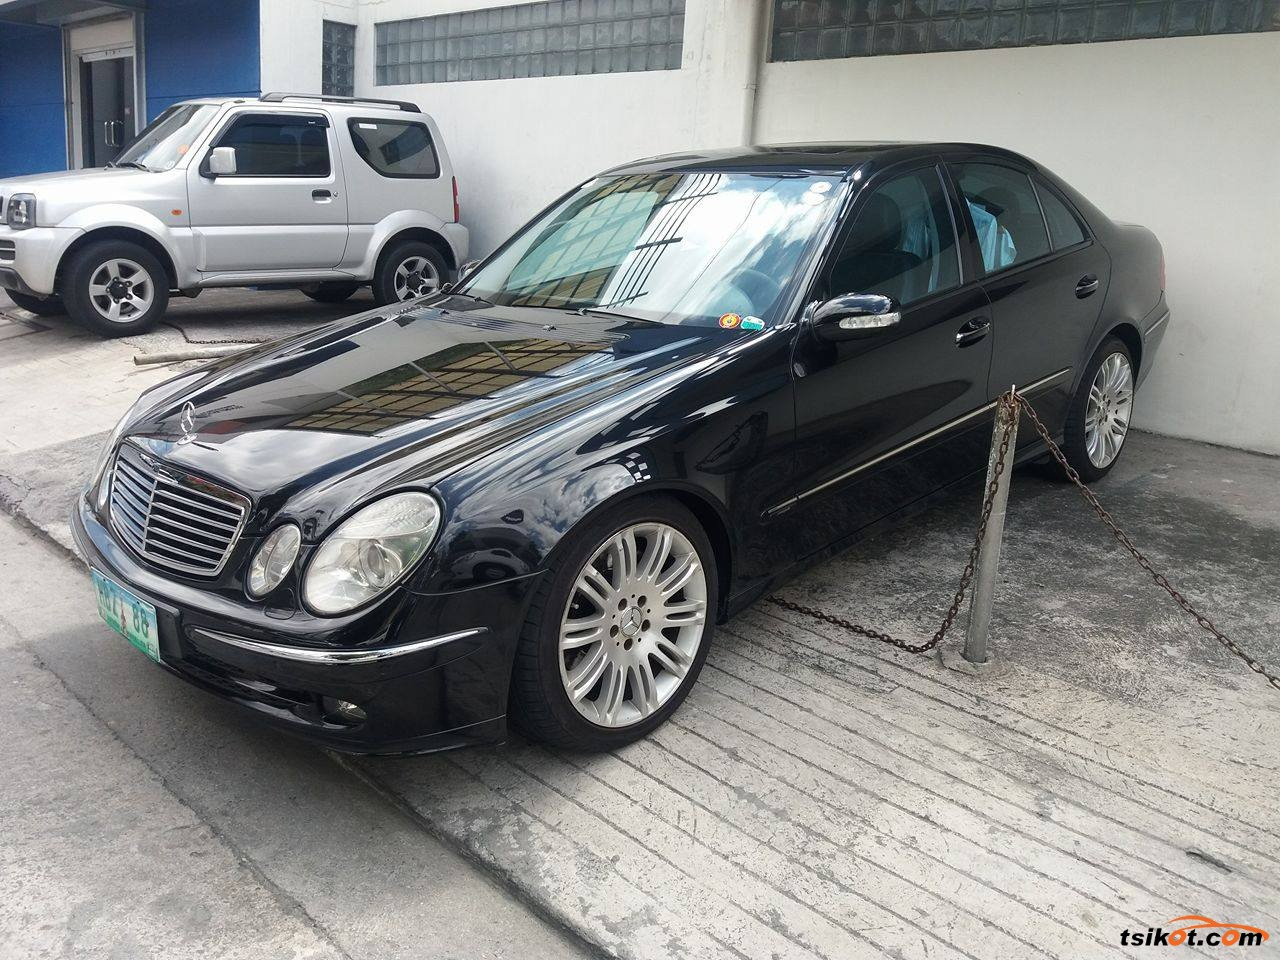 mercedes benz 280 2005 car for sale metro manila. Black Bedroom Furniture Sets. Home Design Ideas